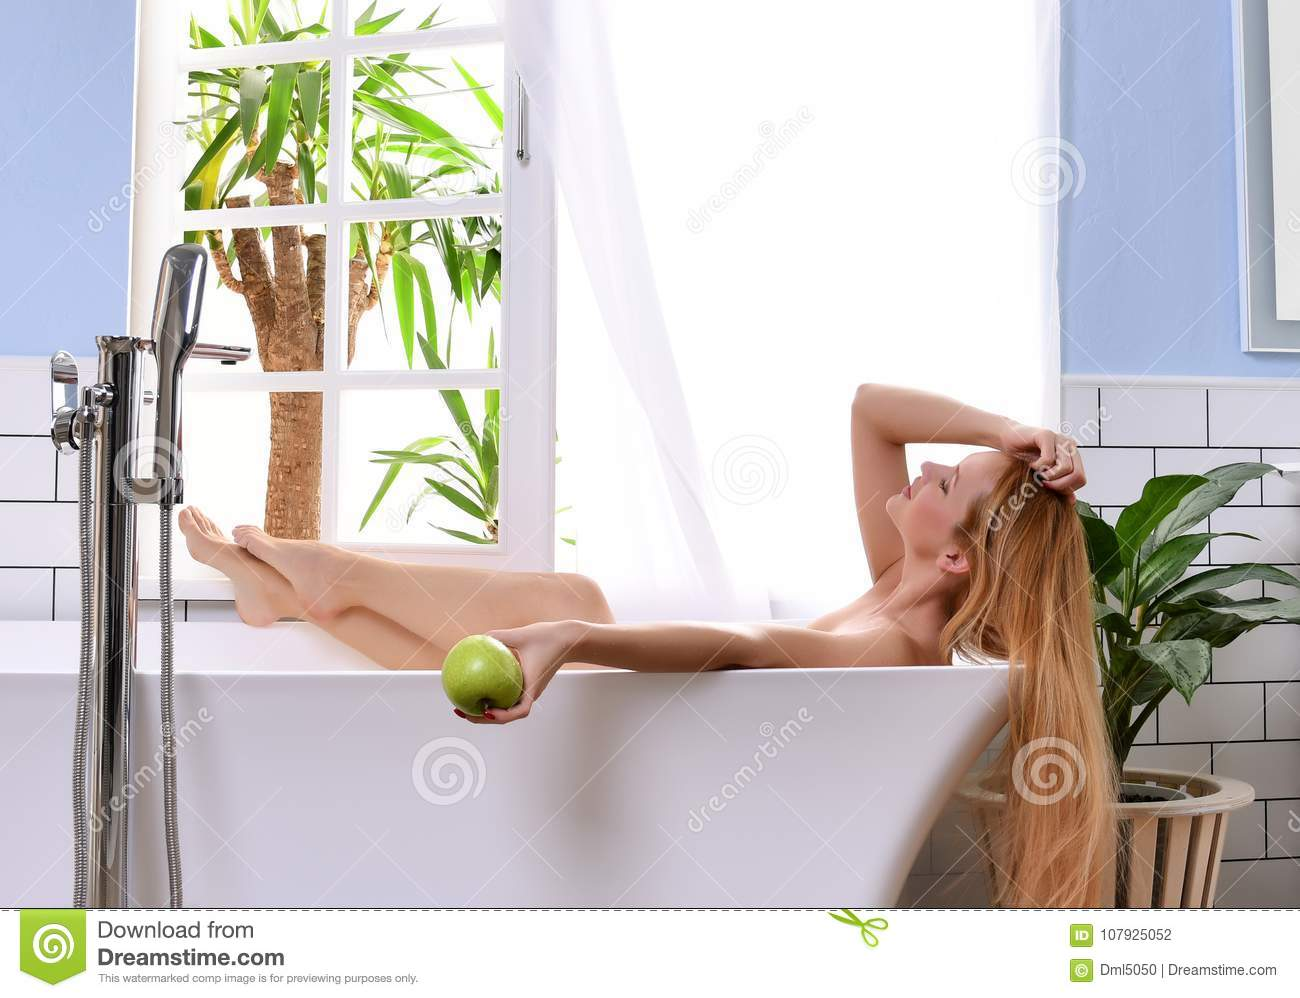 Young beautiful woman lying in bathtub and taking bath near open bathroom window